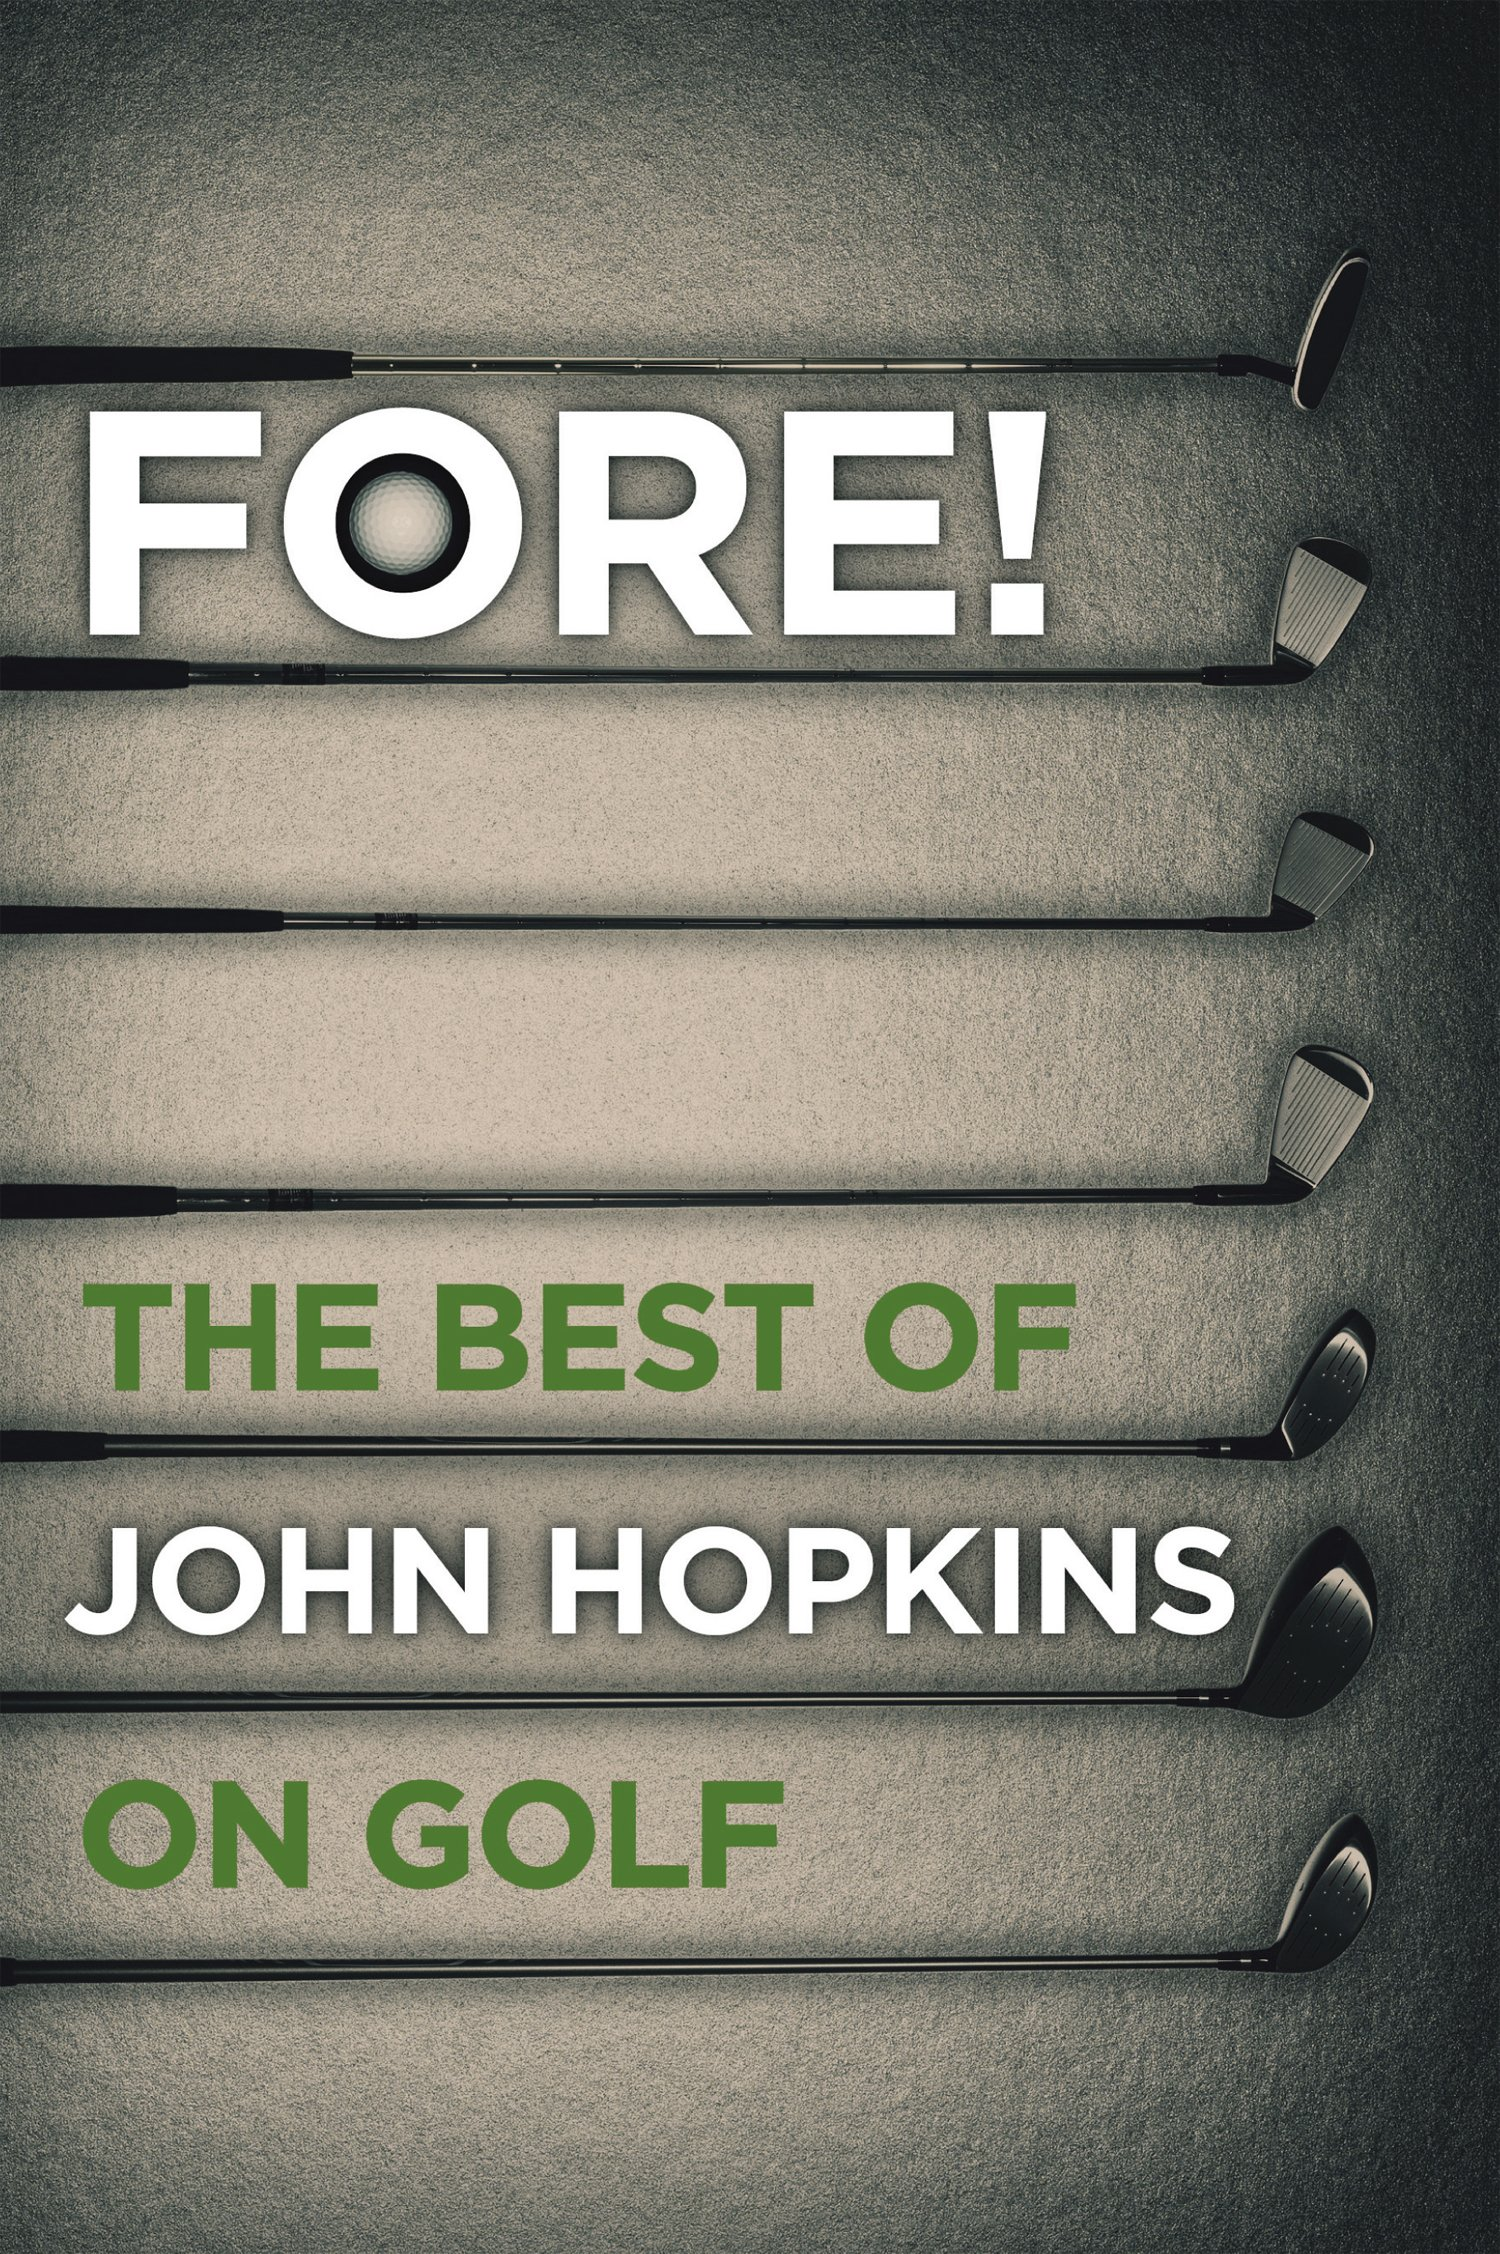 Image OfFore!: The Best Of Bob Hopkins On Golf (English Edition)